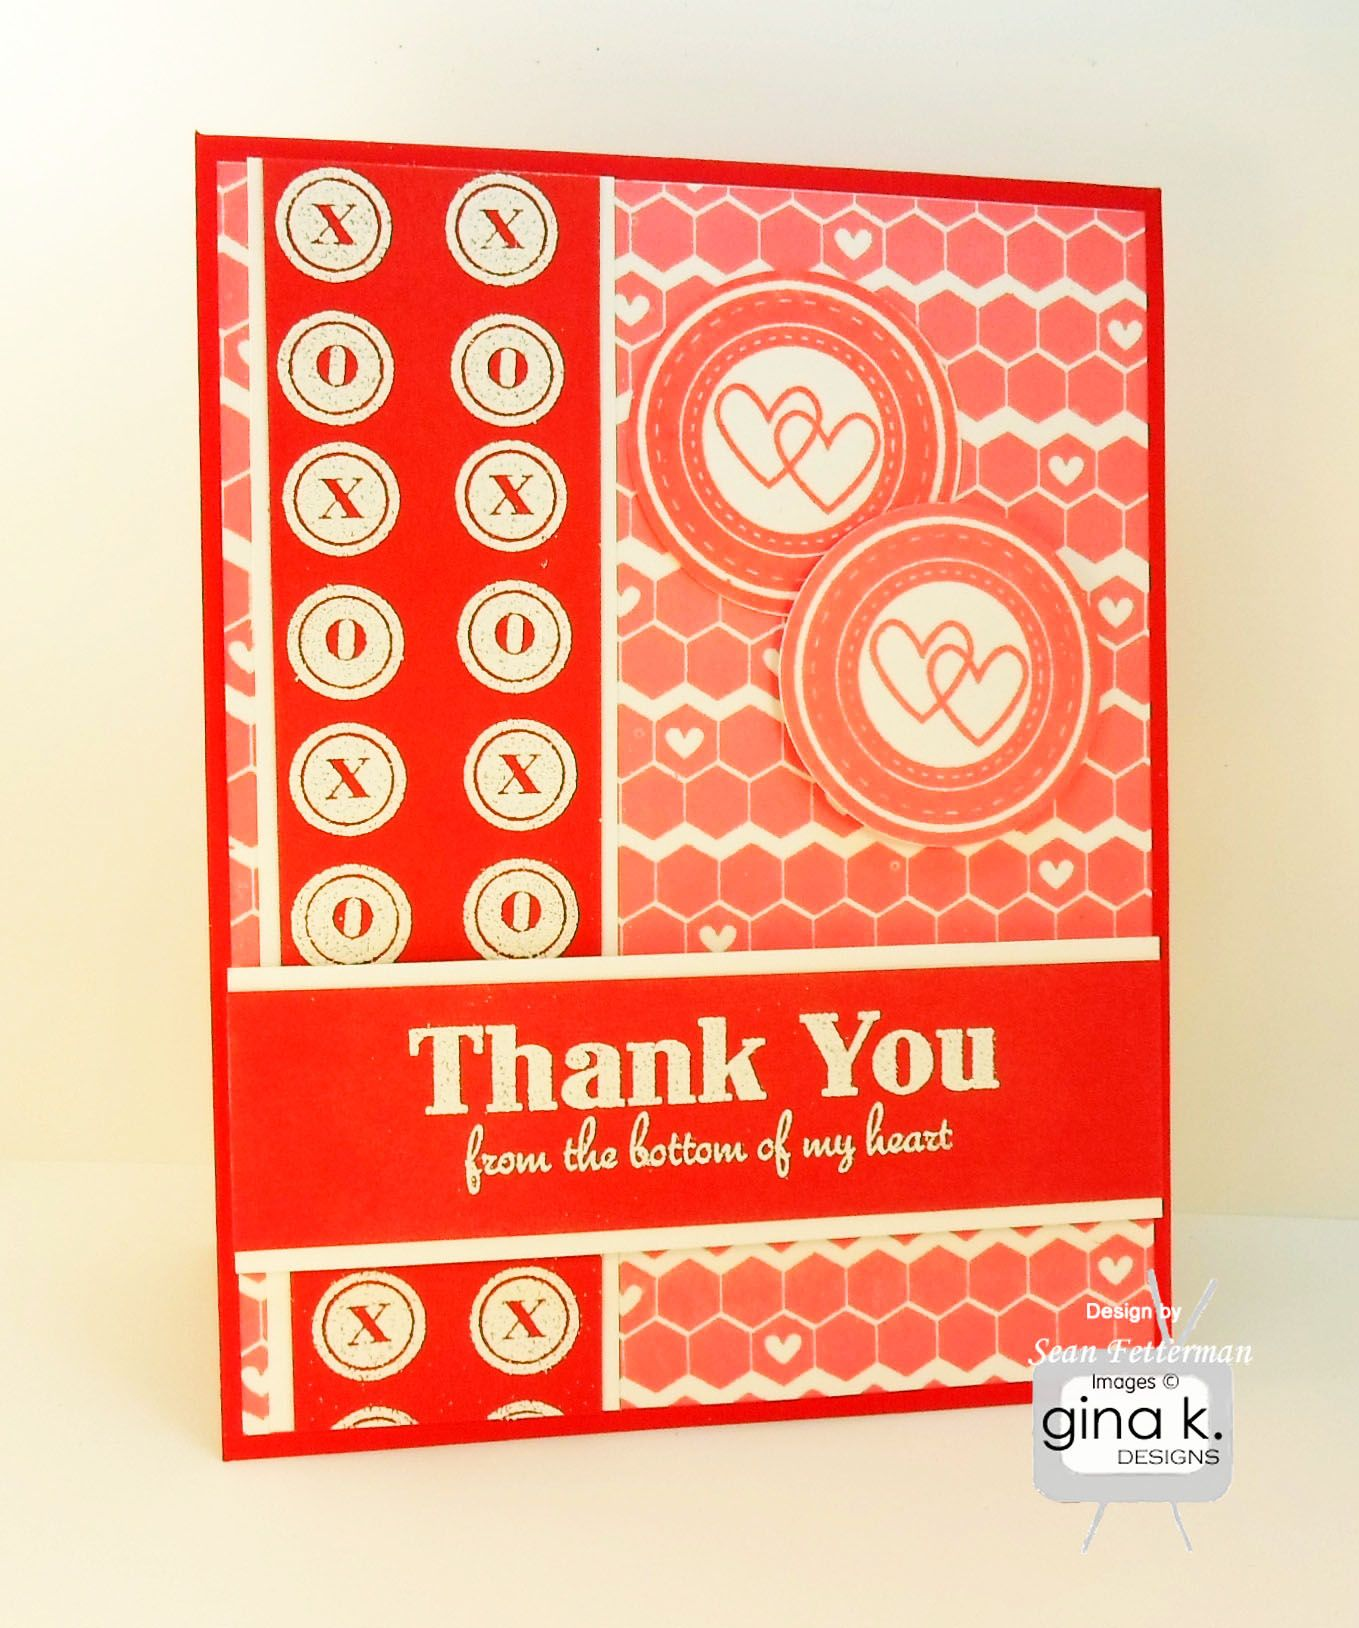 Simple Hearts Stamp Set by Tami Mayberry  Gina K. Designs Store: http://www.shop.ginakdesigns.com/product.sc;jsessionid=92EF1504D7D045C9083A8BE2E58AD141.qscstrfrnt02?productId=1637=16